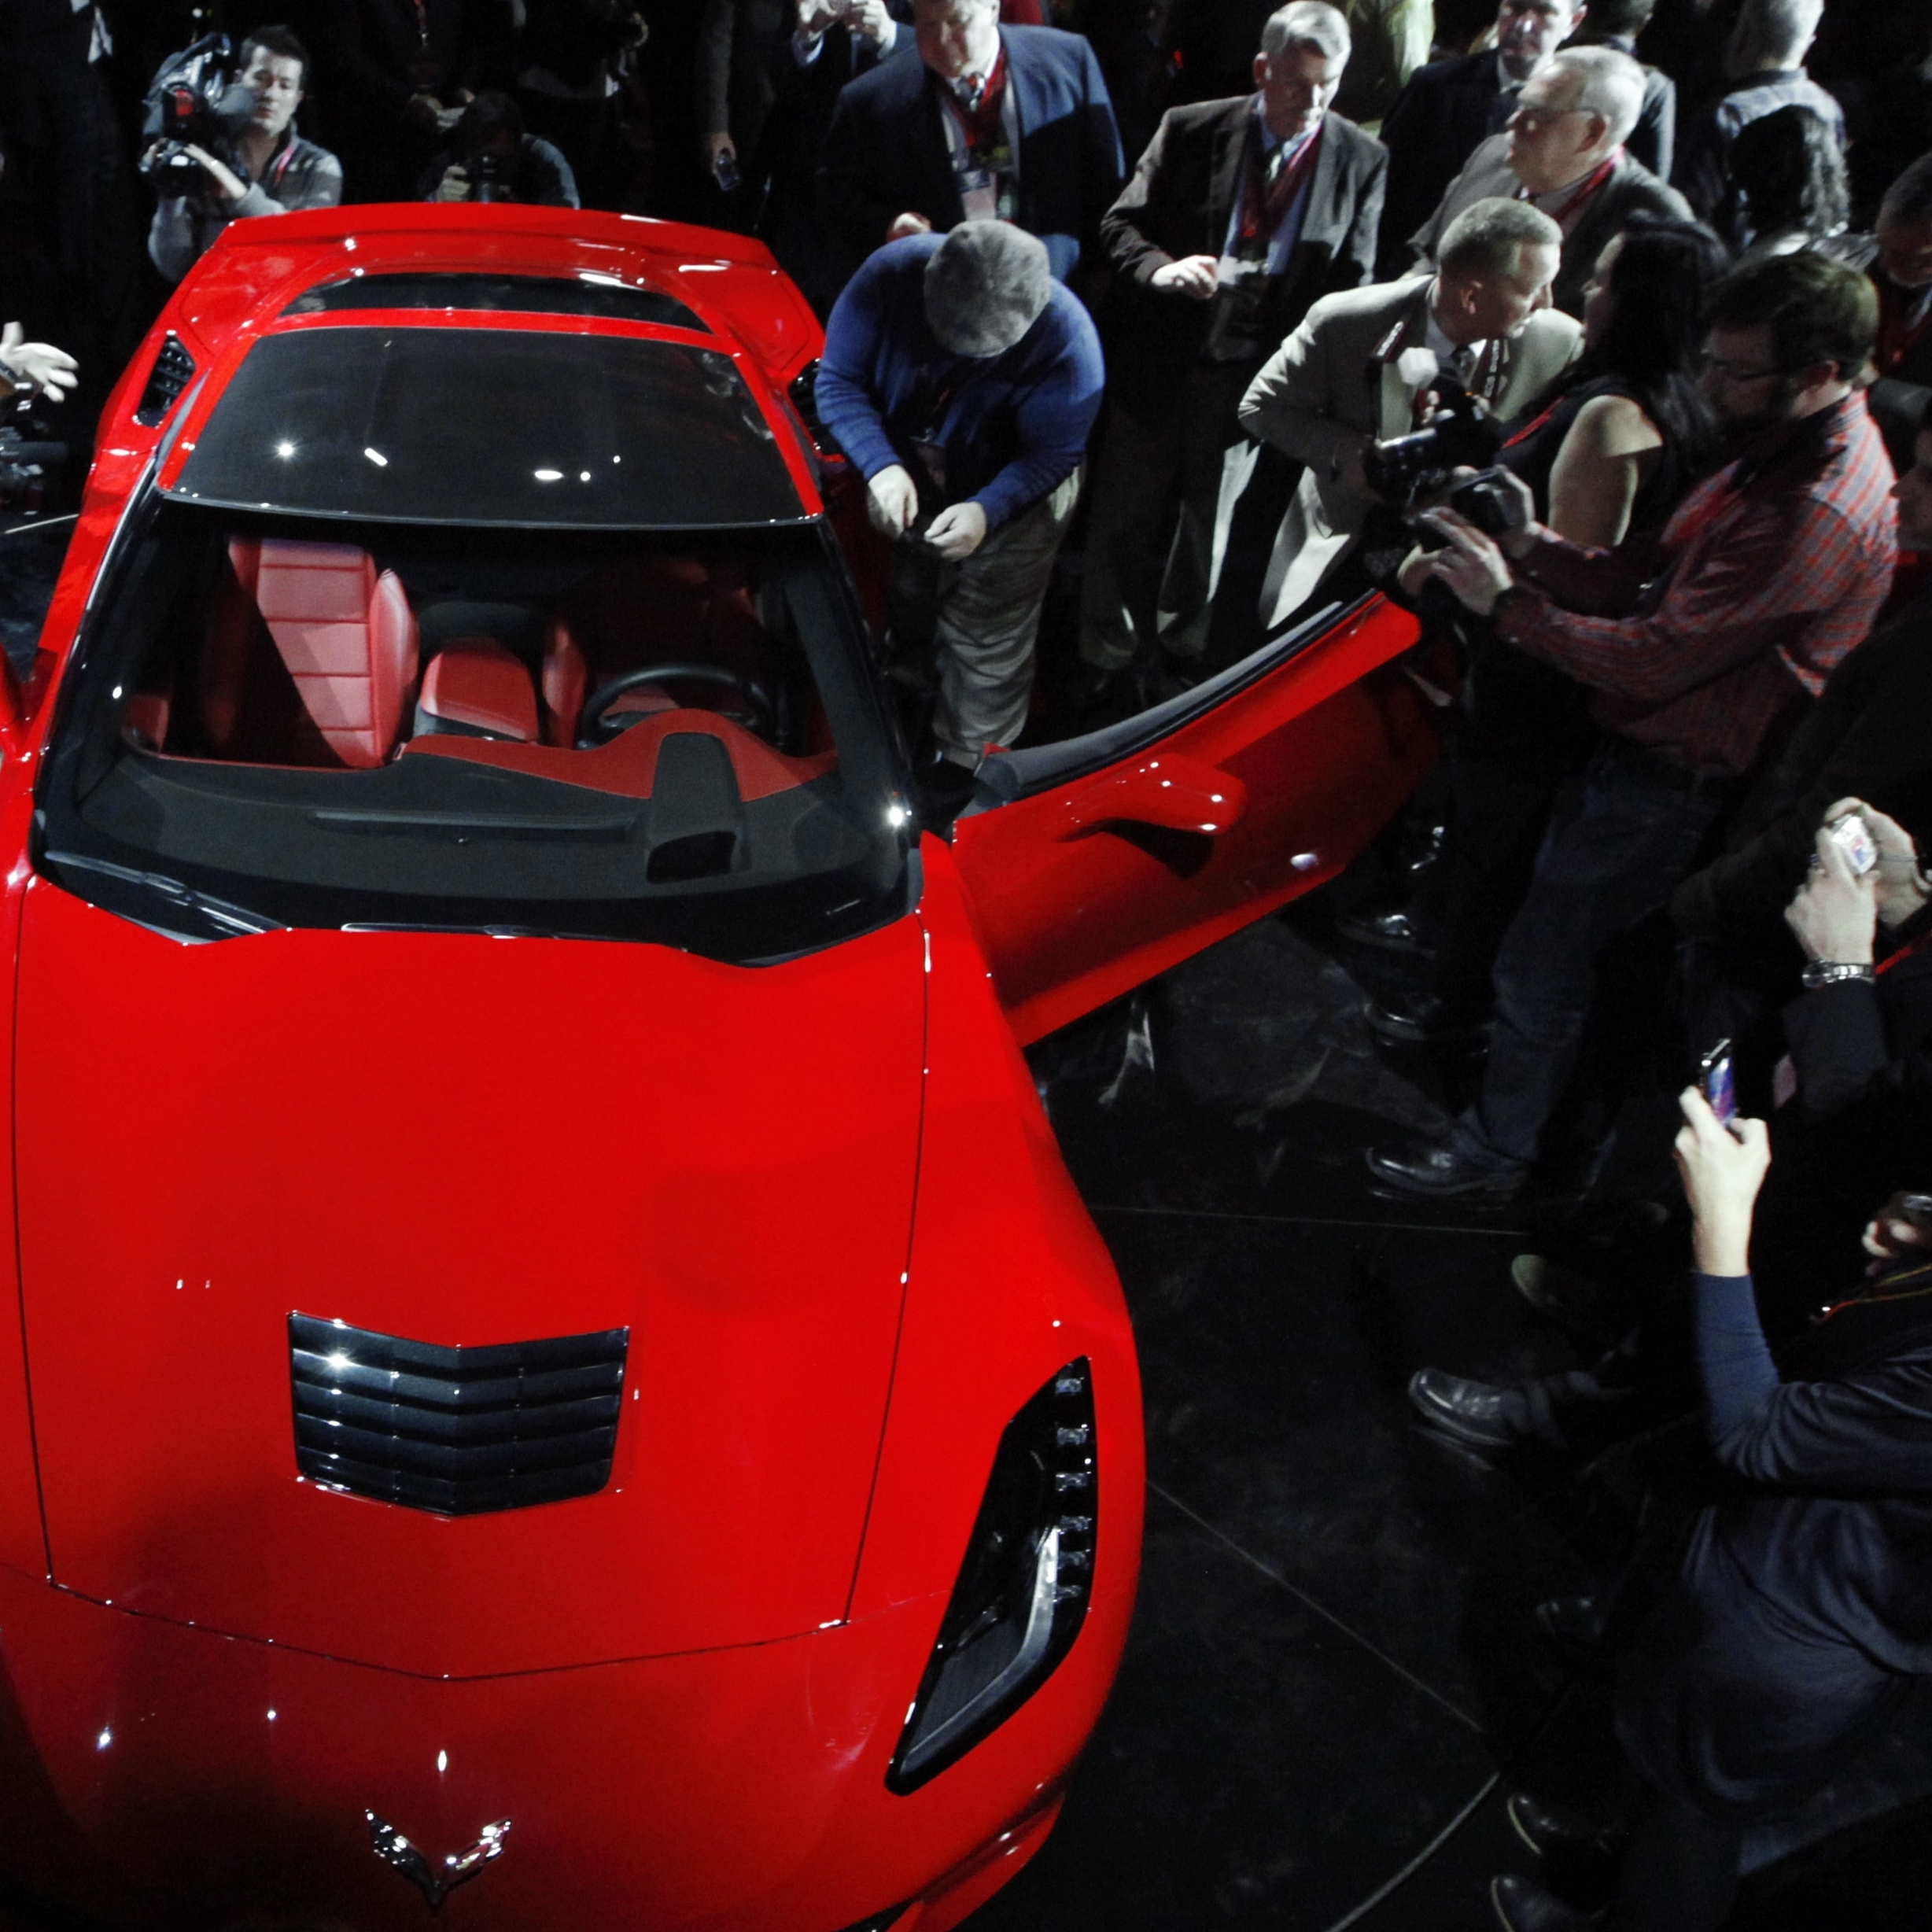 In this photo from this year's Detroit auto show, journalists surround General Motors' new 2014 Chevrolet Corvette Stingray.